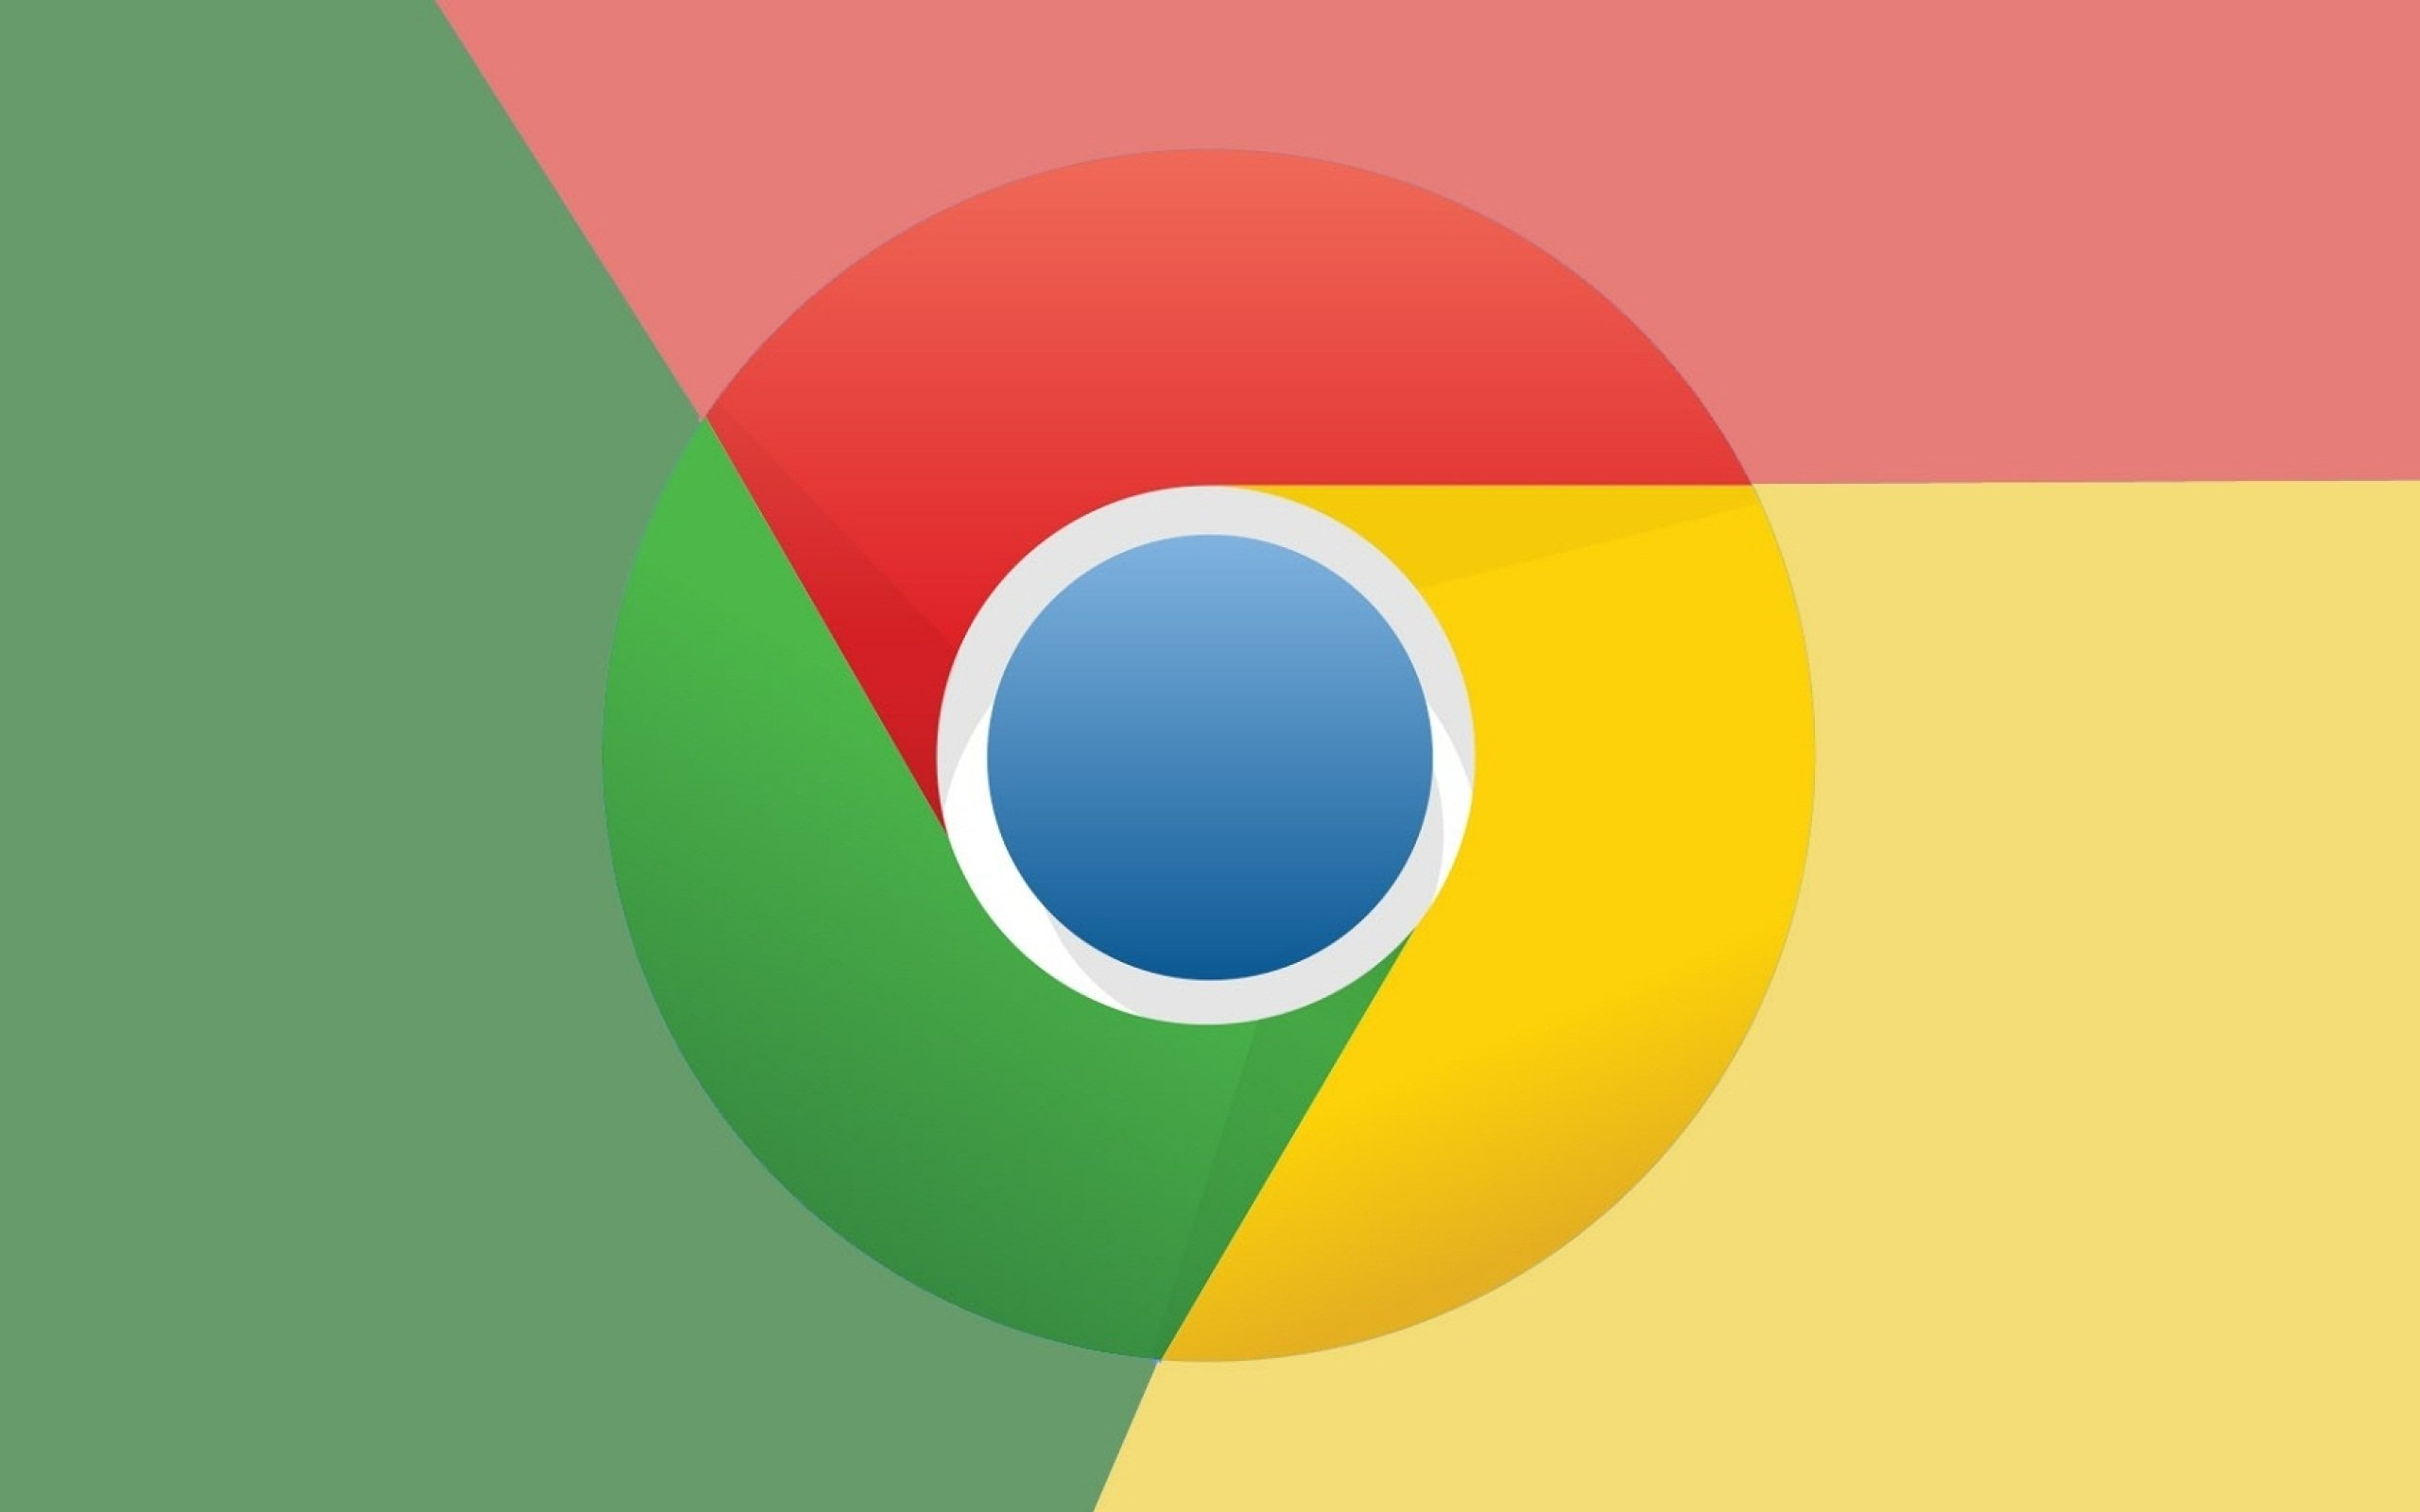 Google shares details of Chrome's built-in ad blocker